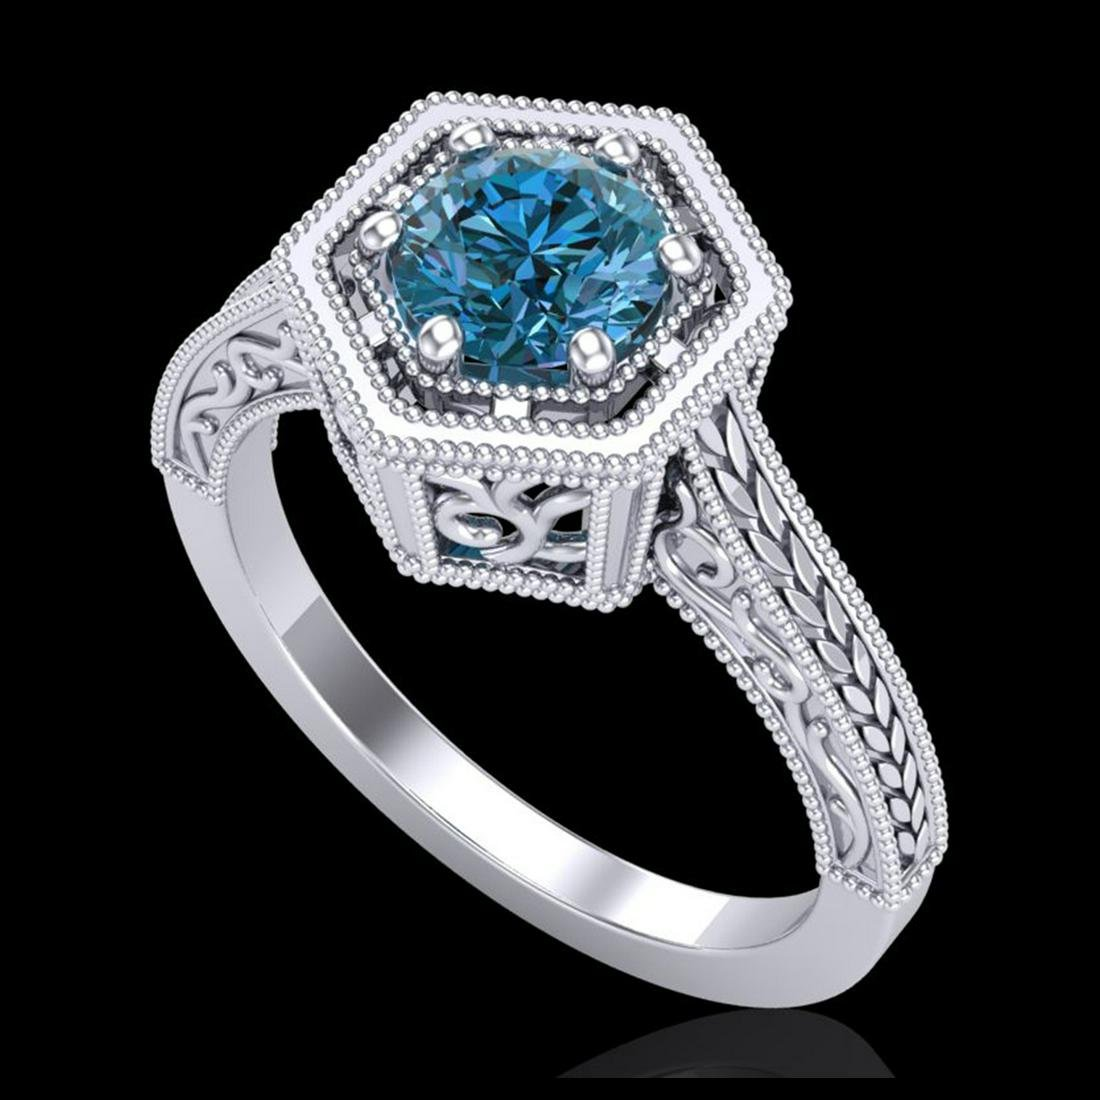 0.77 ctw Fancy Intense Blue Diamond Art Deco Ring 18K